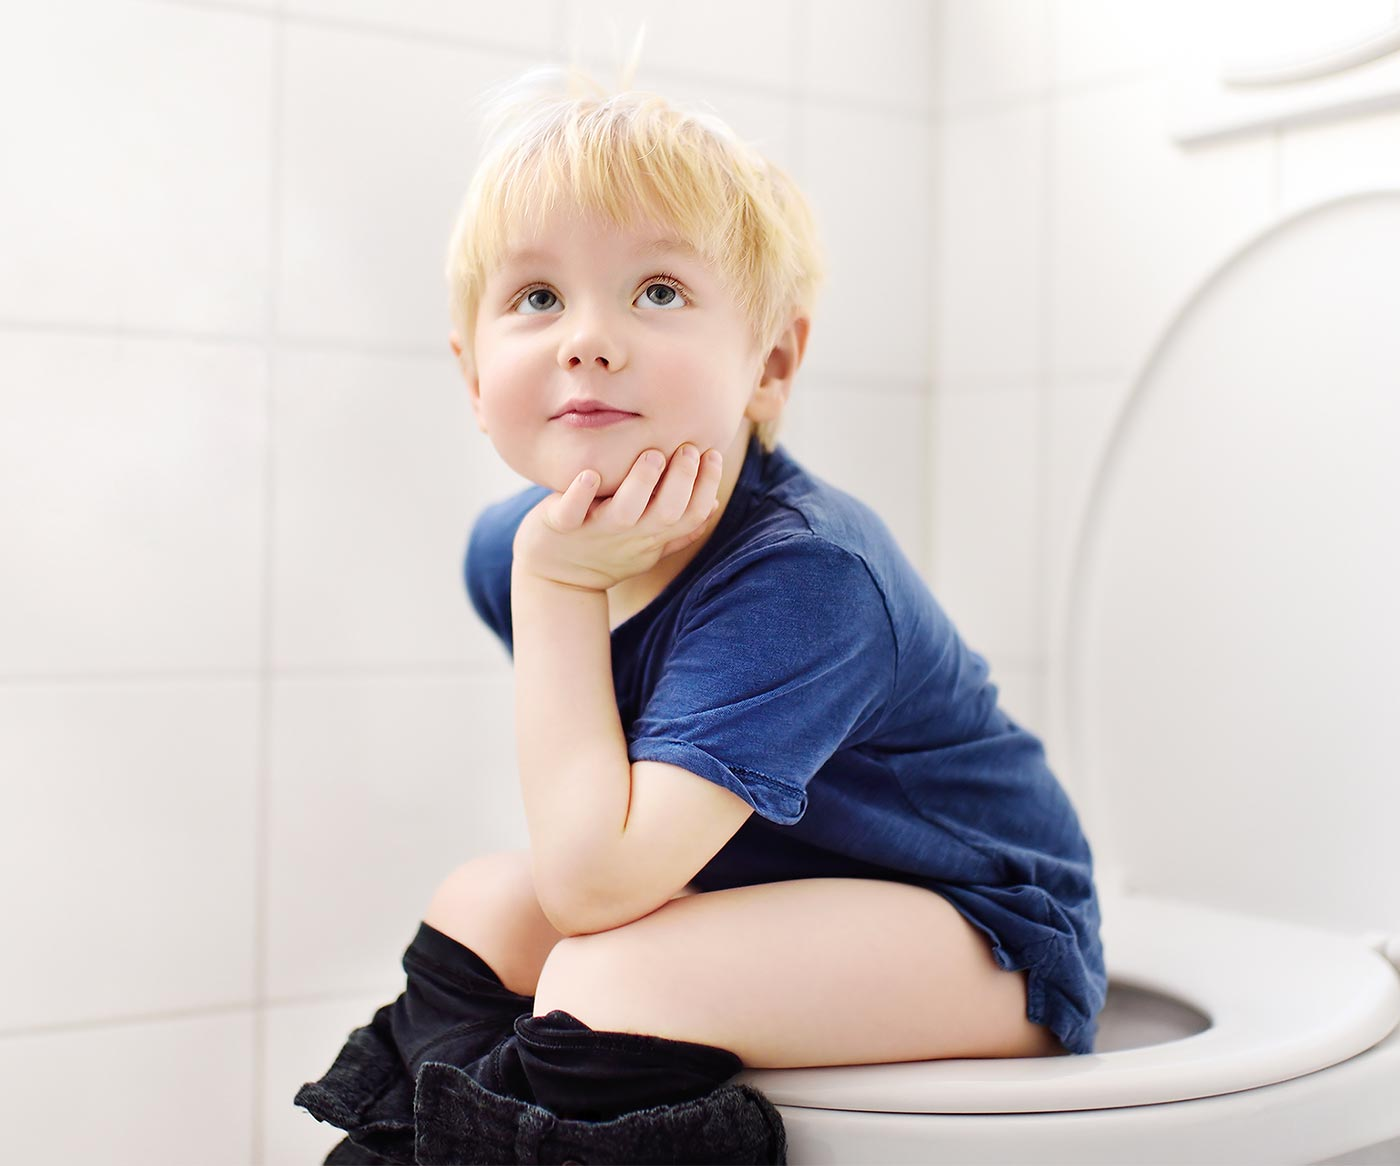 4 year old won't poop on potty